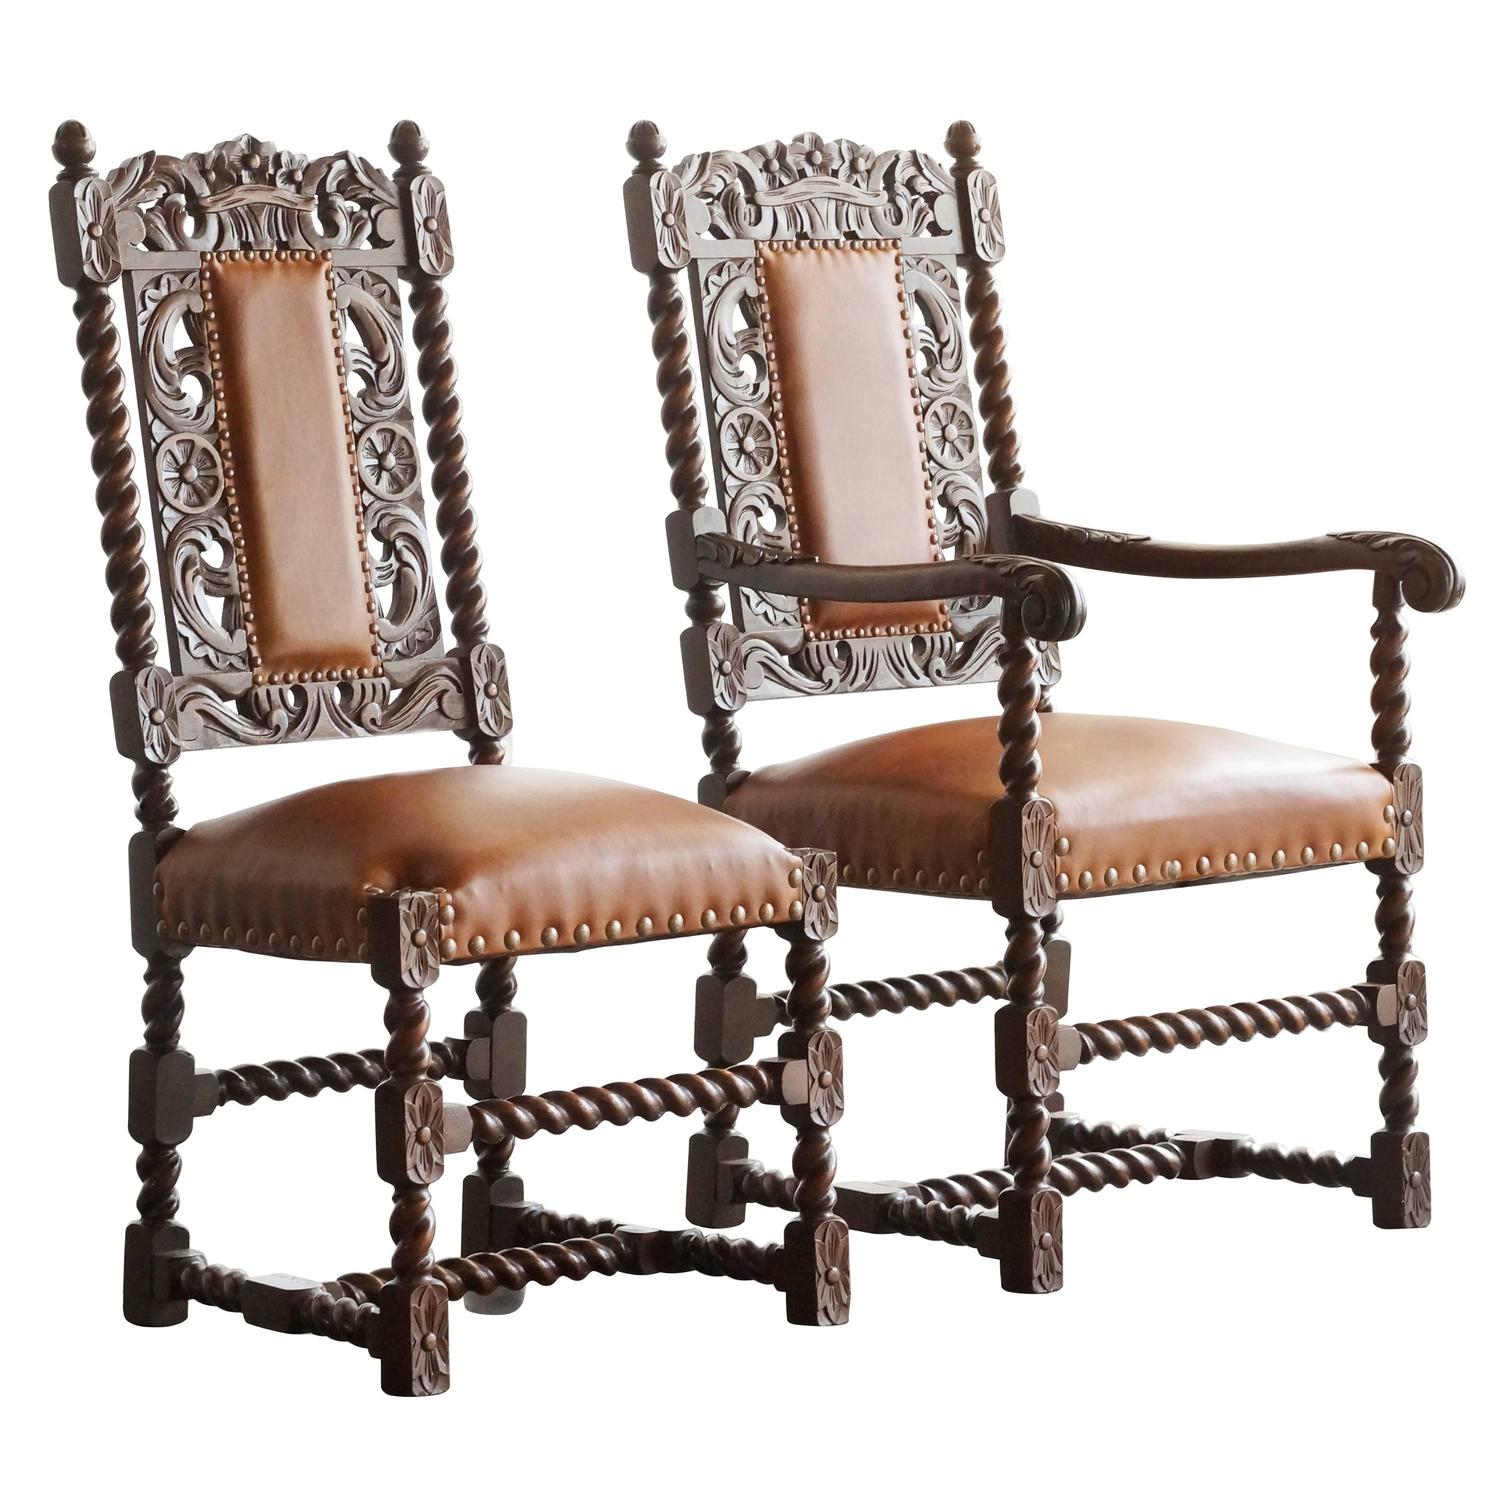 Pair of Antique Spanish Colonial Style Barley Twist Chairs. 1890s at 1stdibs - Pair Of Antique Spanish Colonial Style Barley Twist Chairs. 1890s At